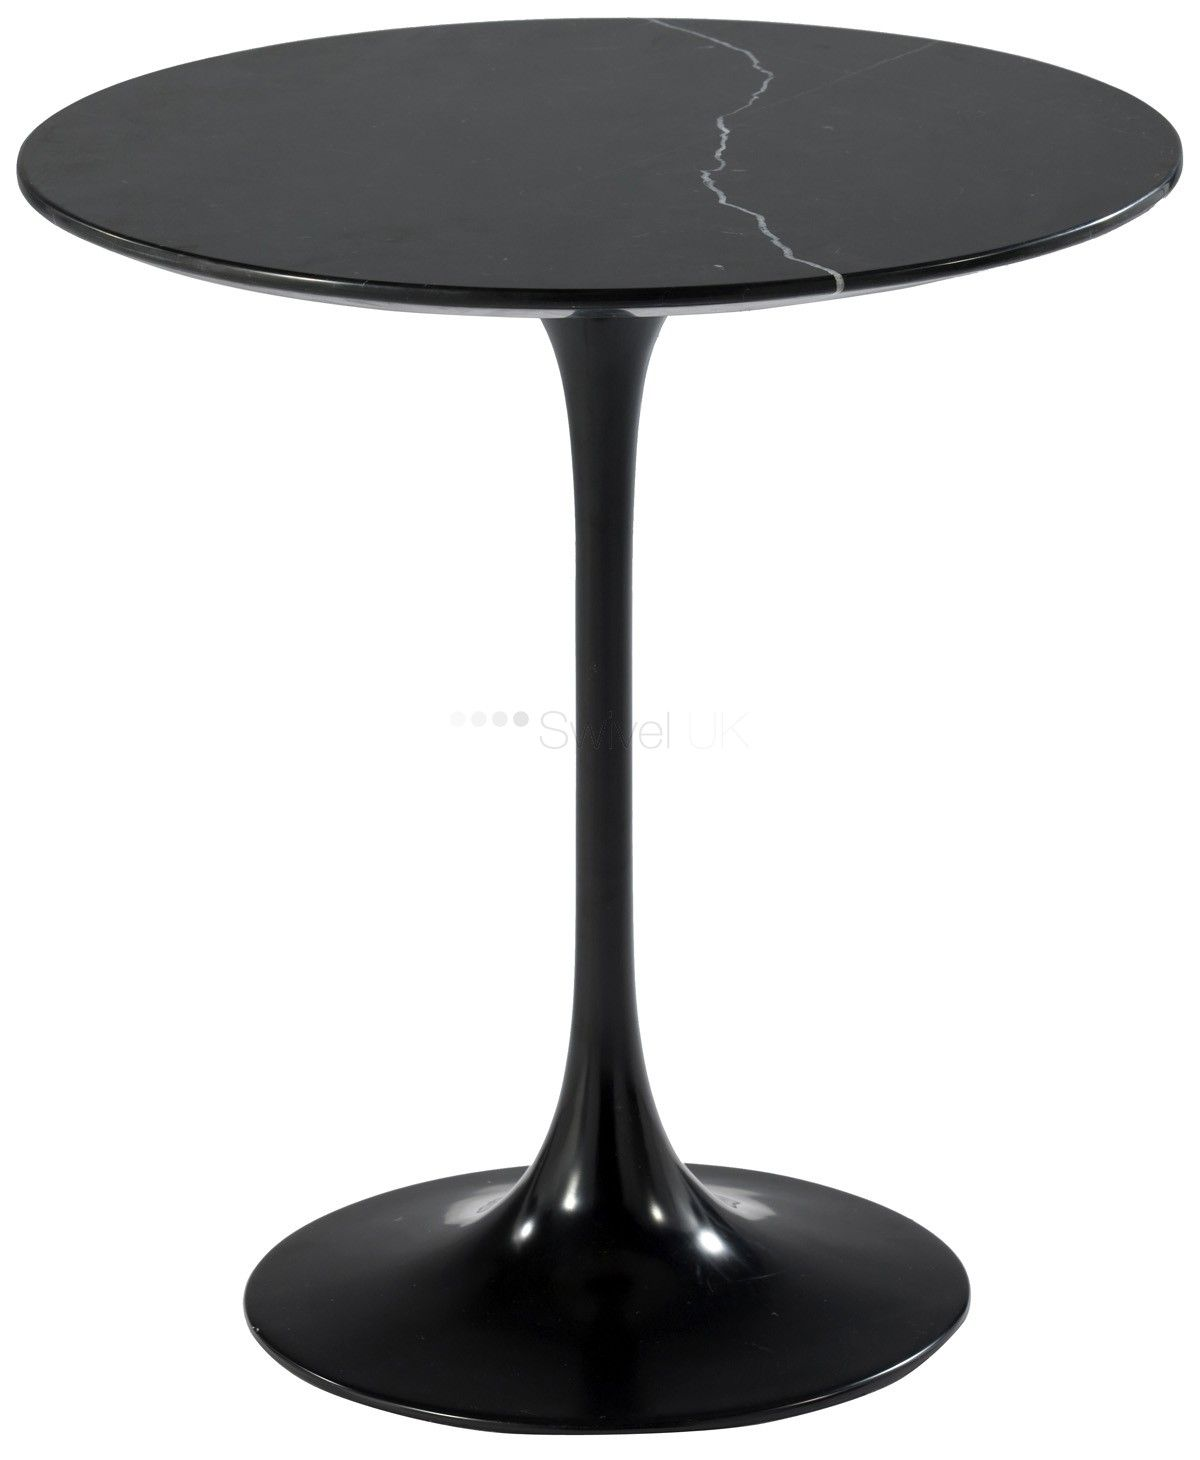 Black side table round - Black Side Table Round 5